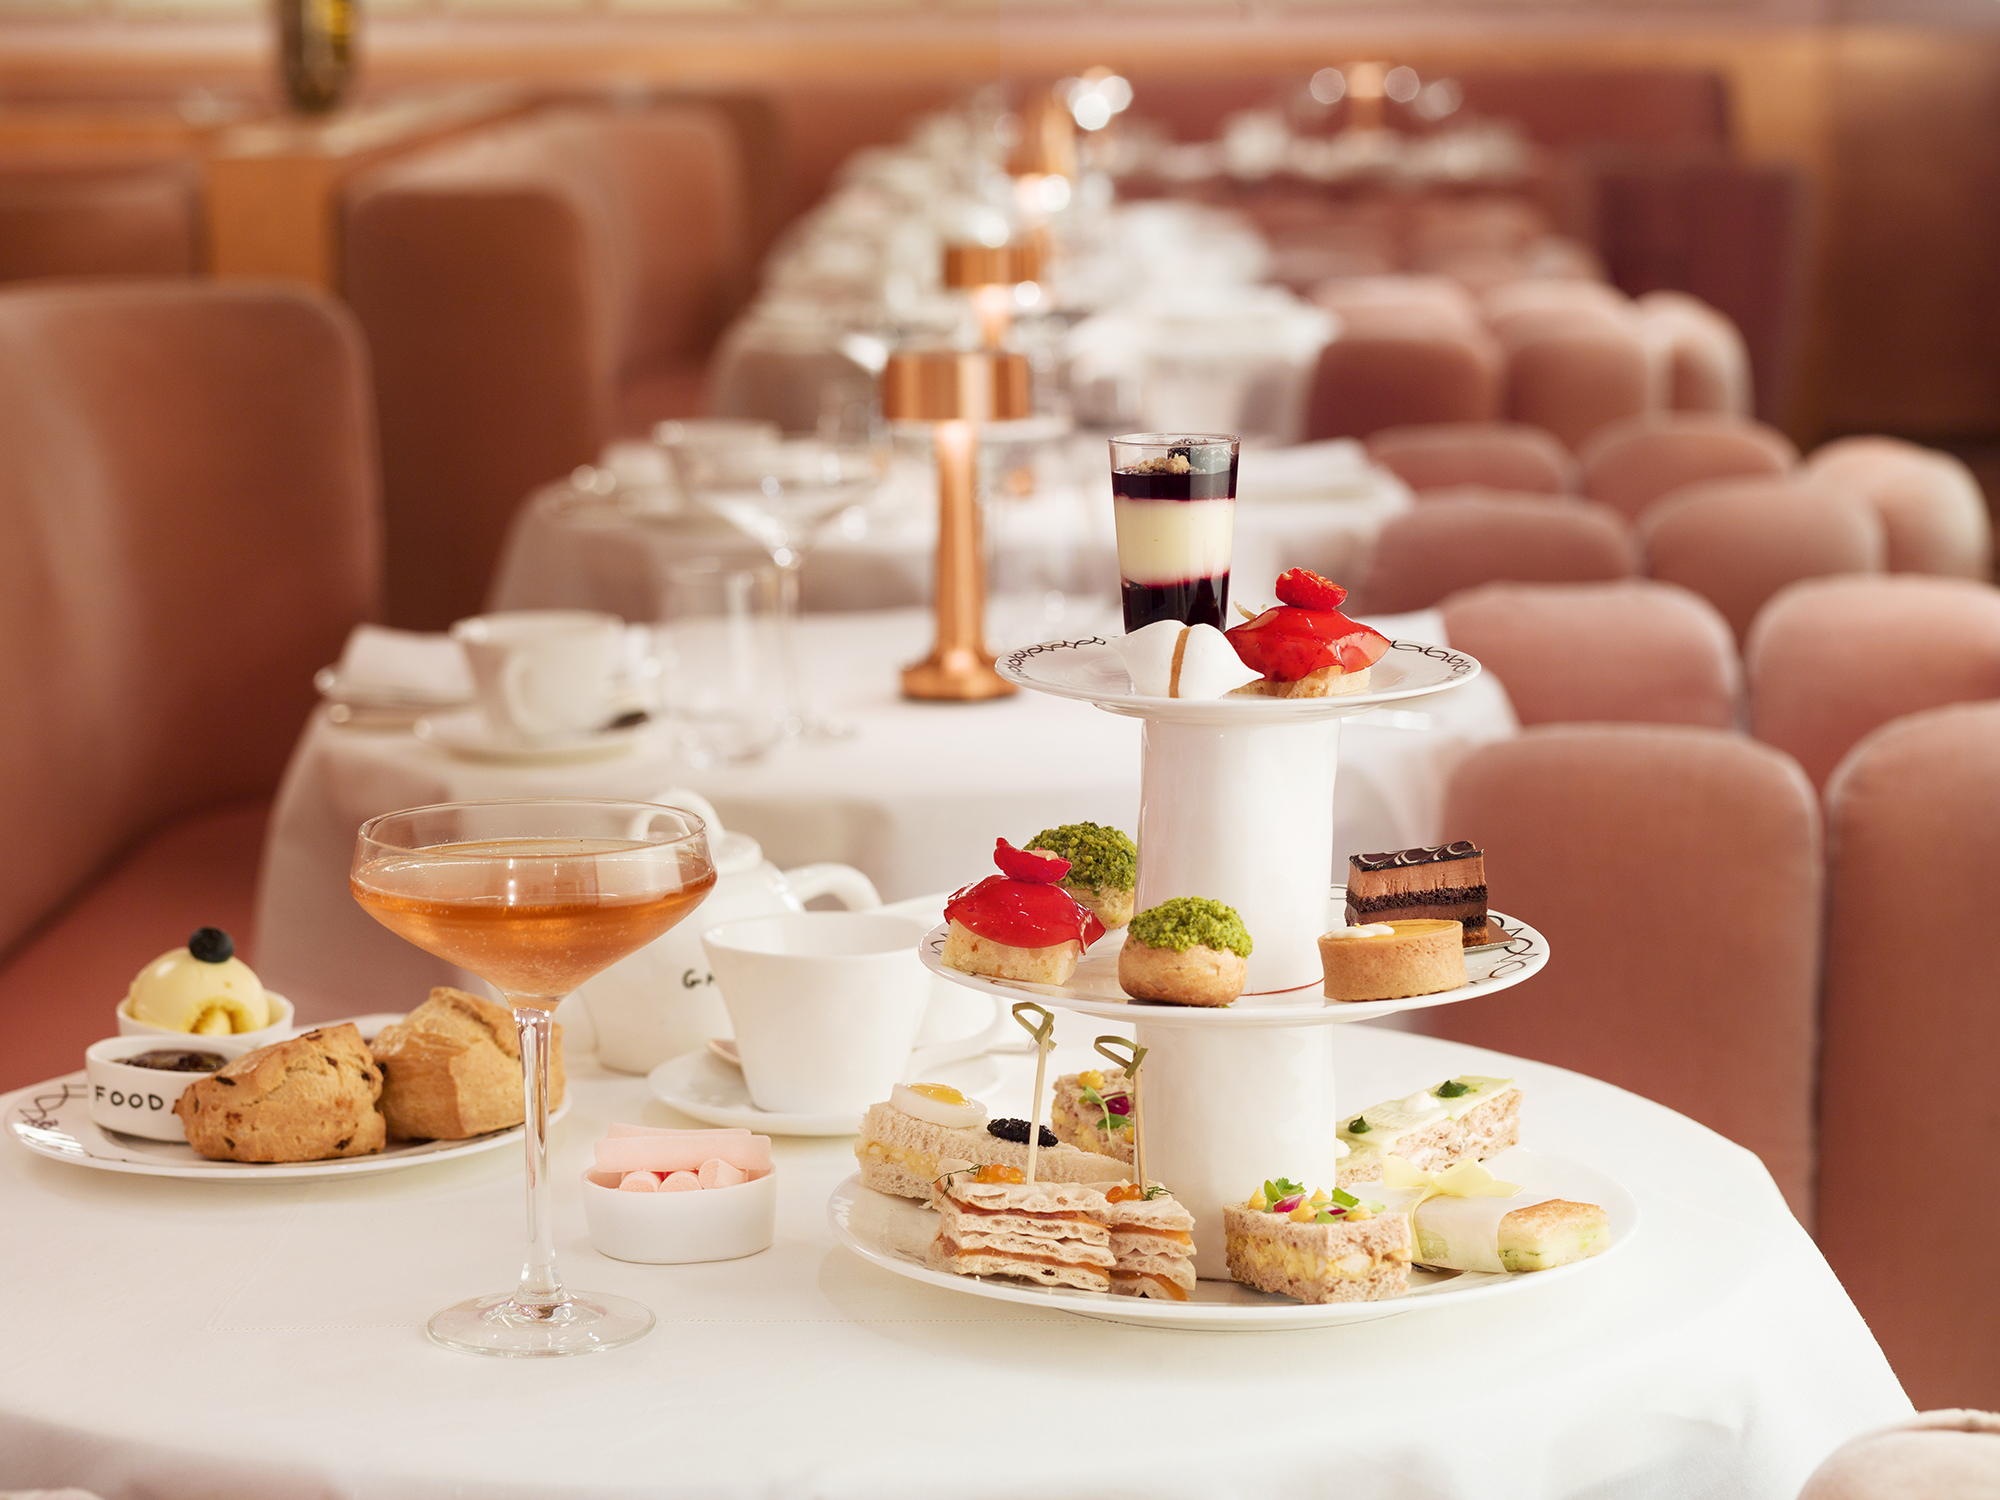 Afternoon Tea Week | #AfternoonTeaWeek